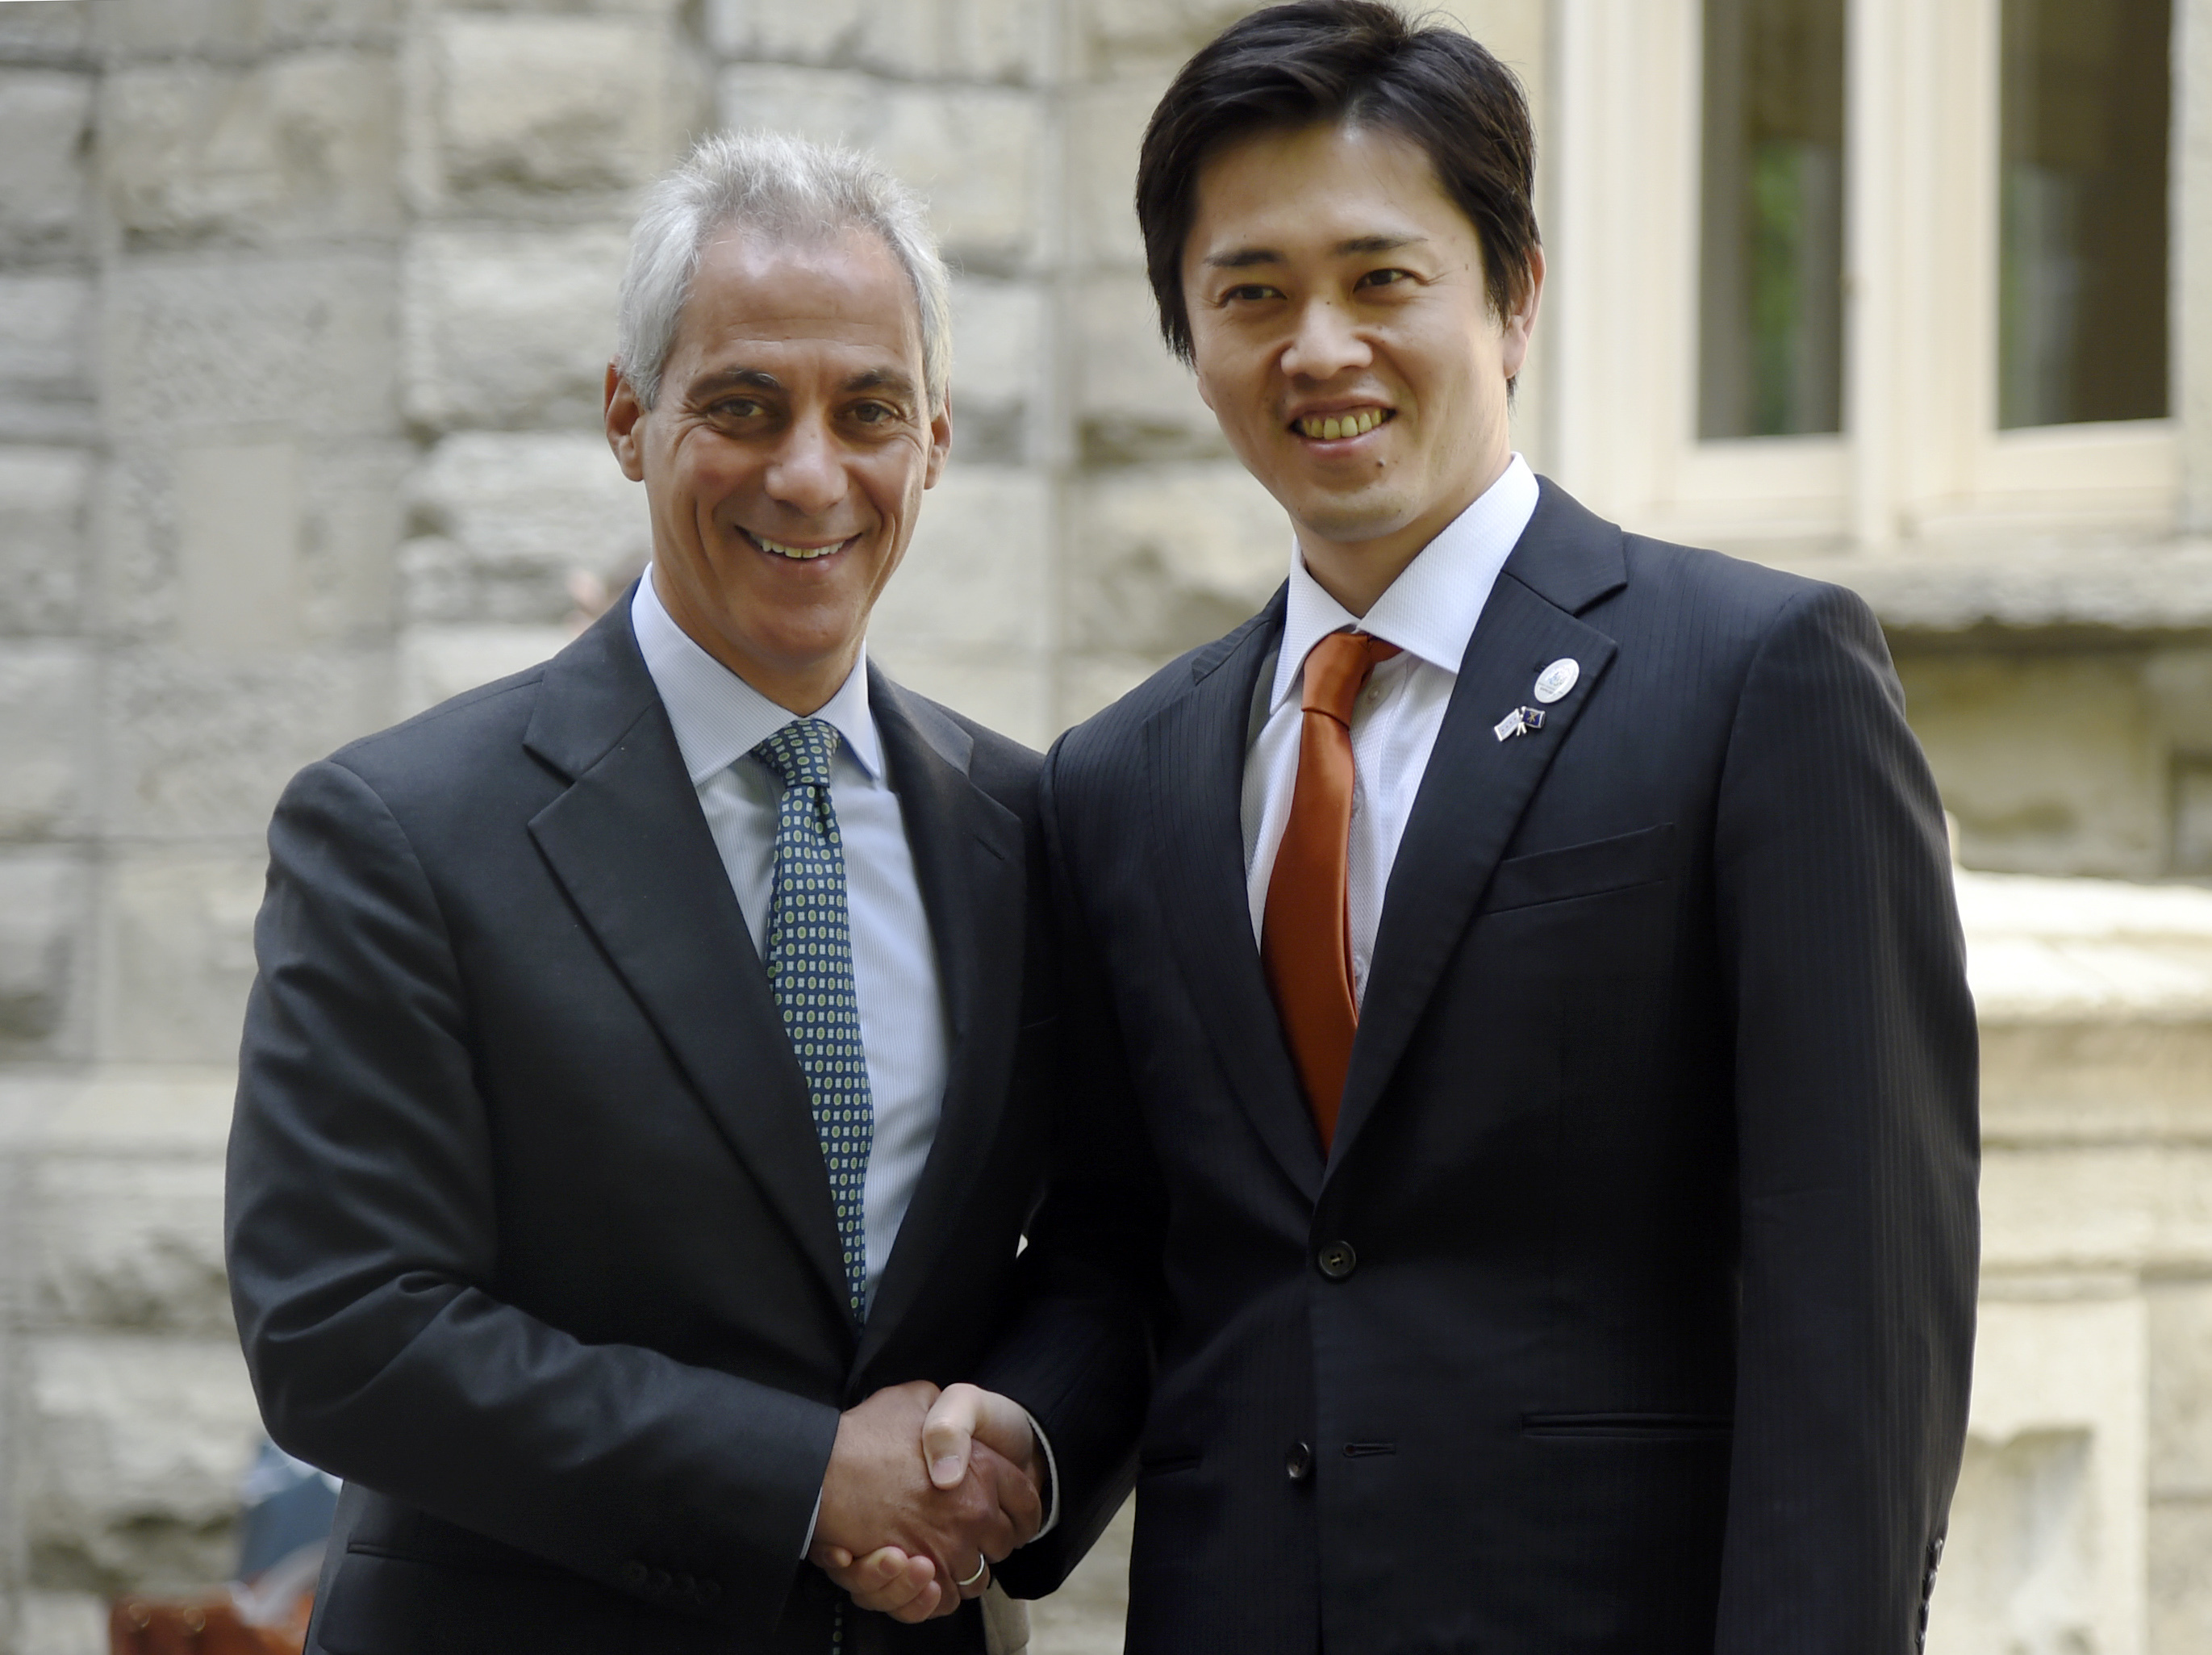 Chicago Mayor Rahm Emanuel (left) shakes hands with Hirofumi Yoshimura, mayor of Osaka, Japan, in June 2018 in Chicago. The mayors met to celebrate the 45th anniversary of the sister city partnership between Chicago and Osaka.